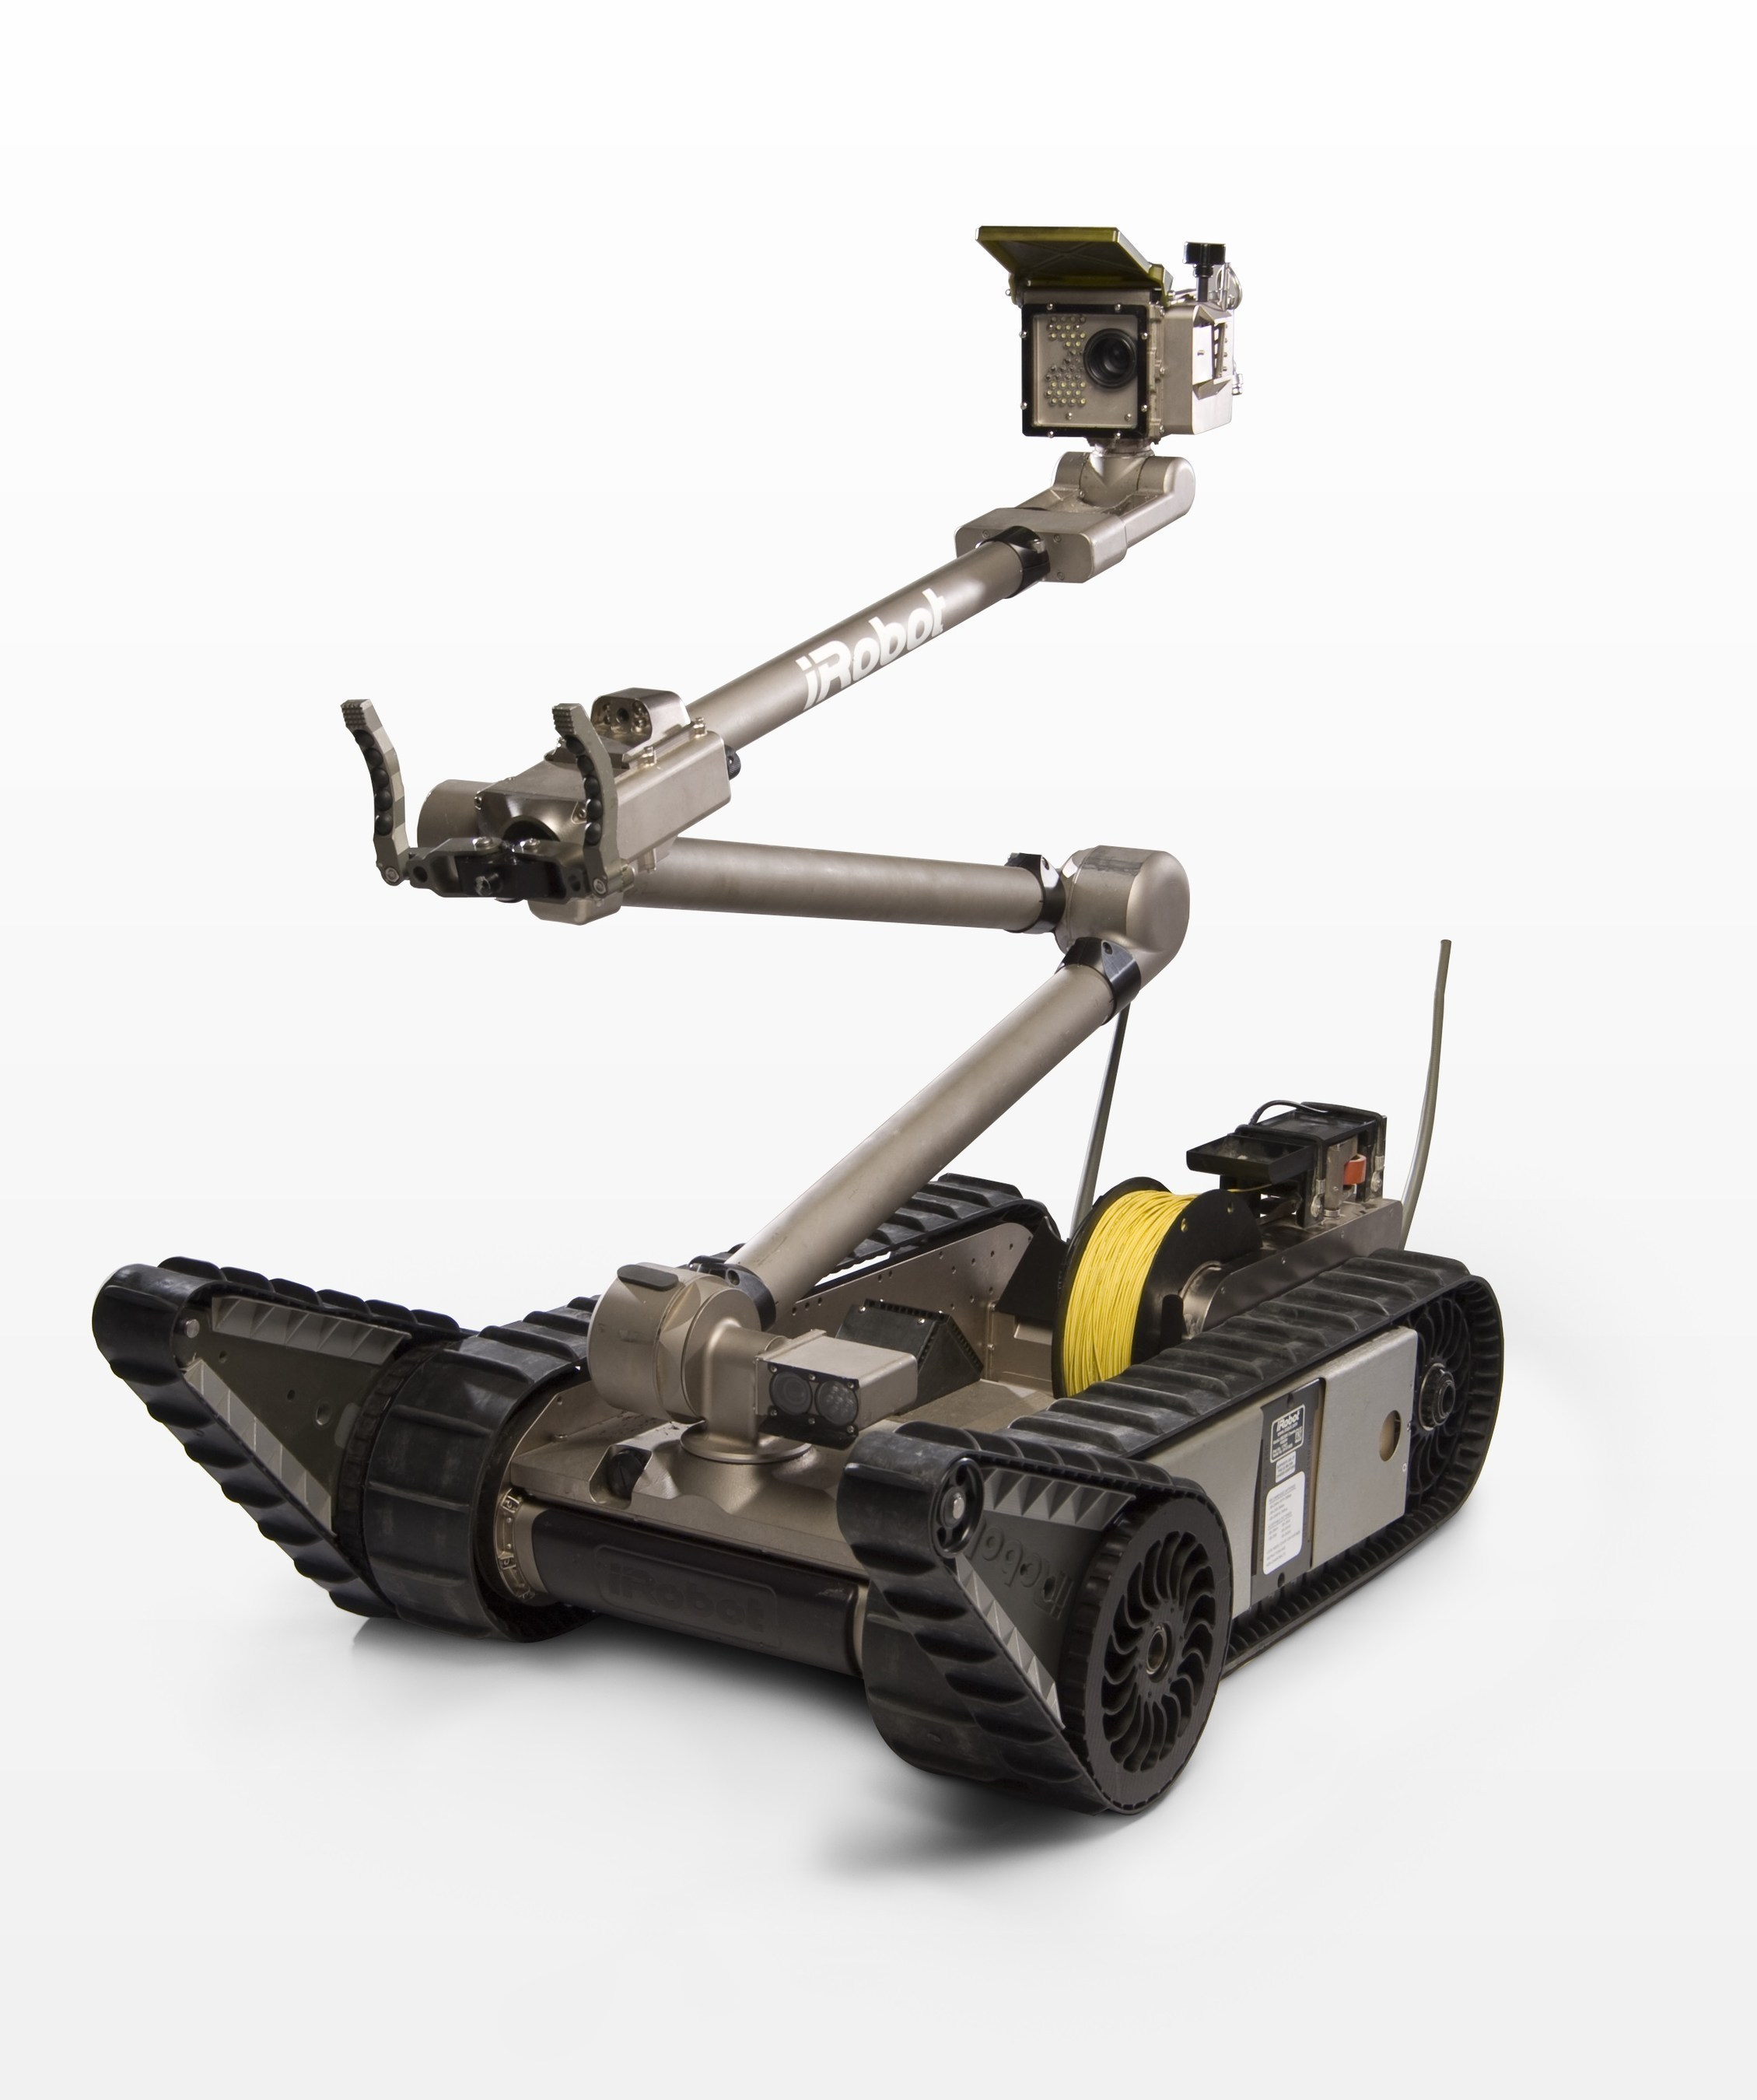 The iRobot 510 PackBot is used to perform a variety of missions, including explosive ordnance disposal, ...